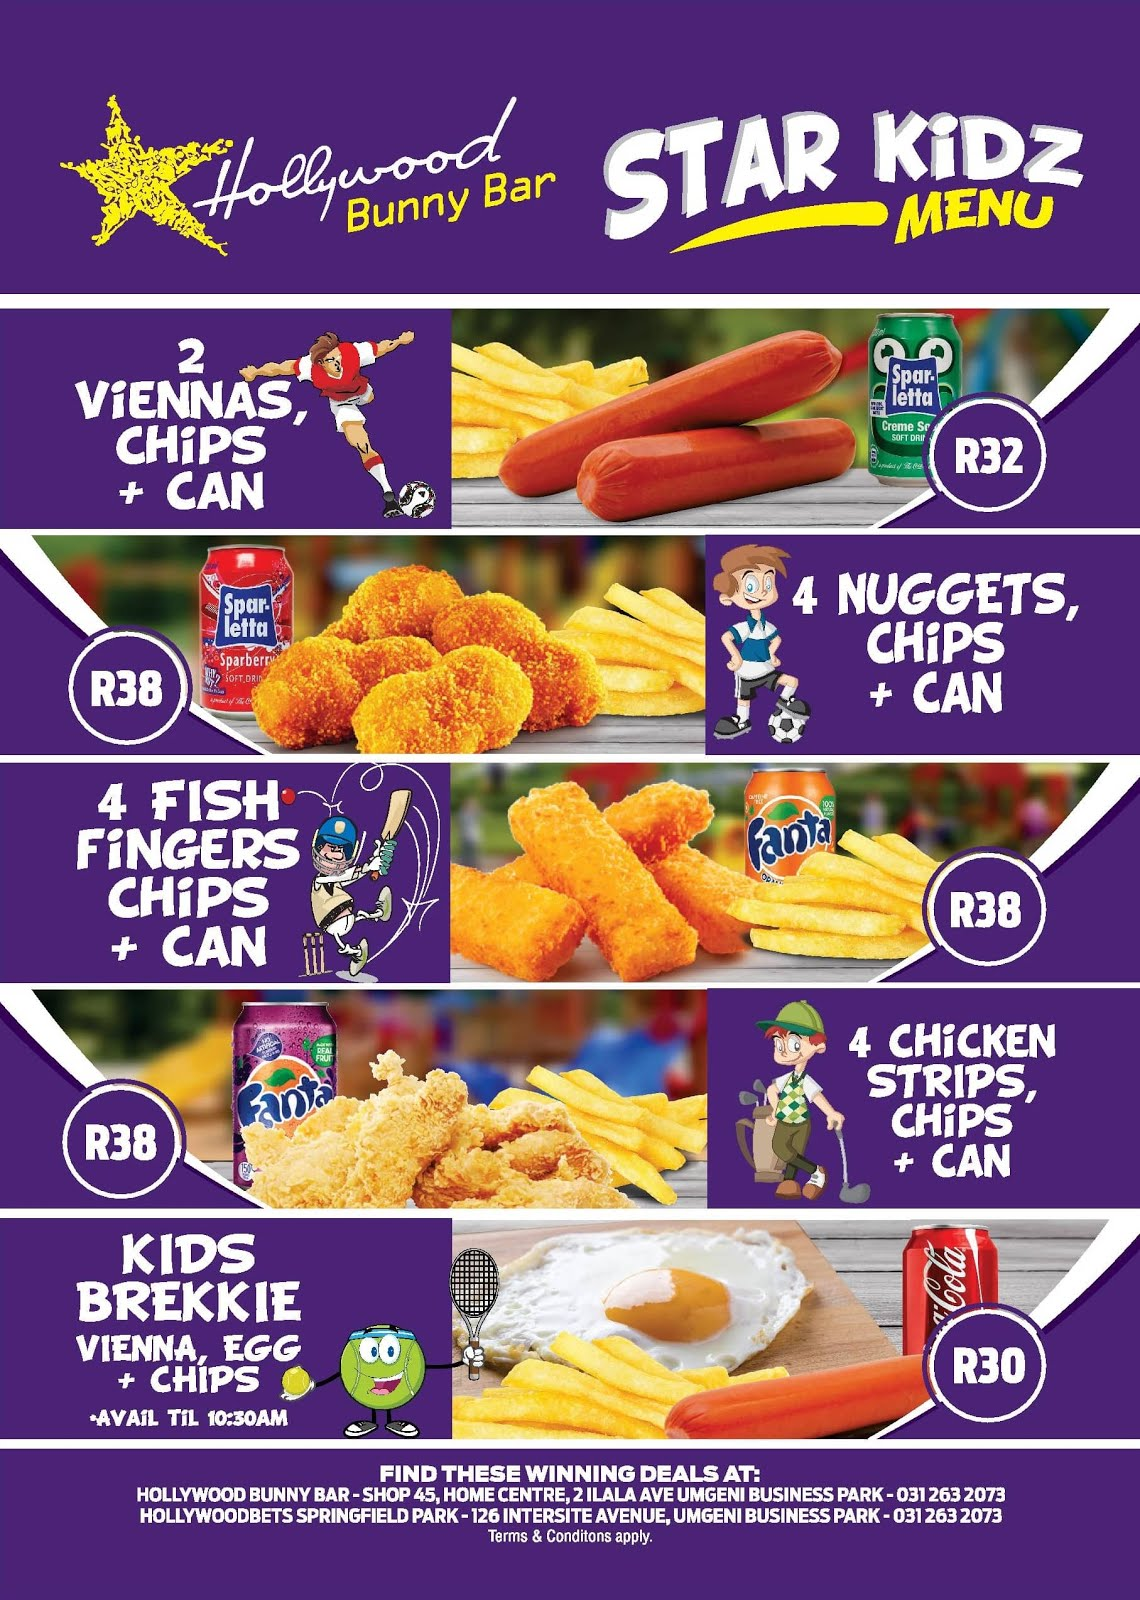 Hollywood Bunny Bar - Star Kidz Menu - Viennas - Chicken Nuggets - Fish Fingers